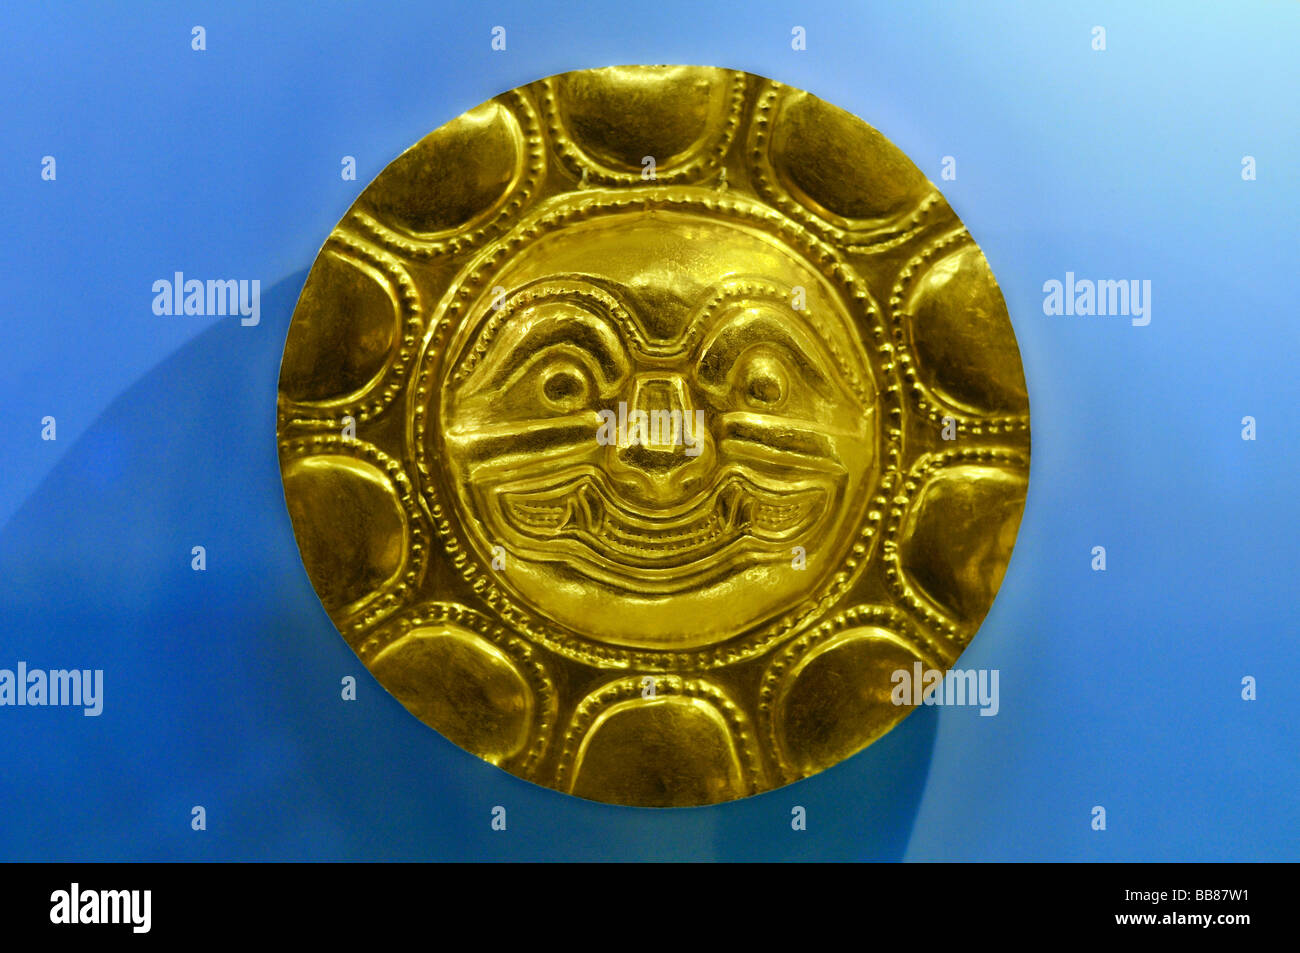 Pre-Columbian goldwork collection, solar disk, Gold Museum, Museo del Oro, Bogotá, Colombia, South America - Stock Image